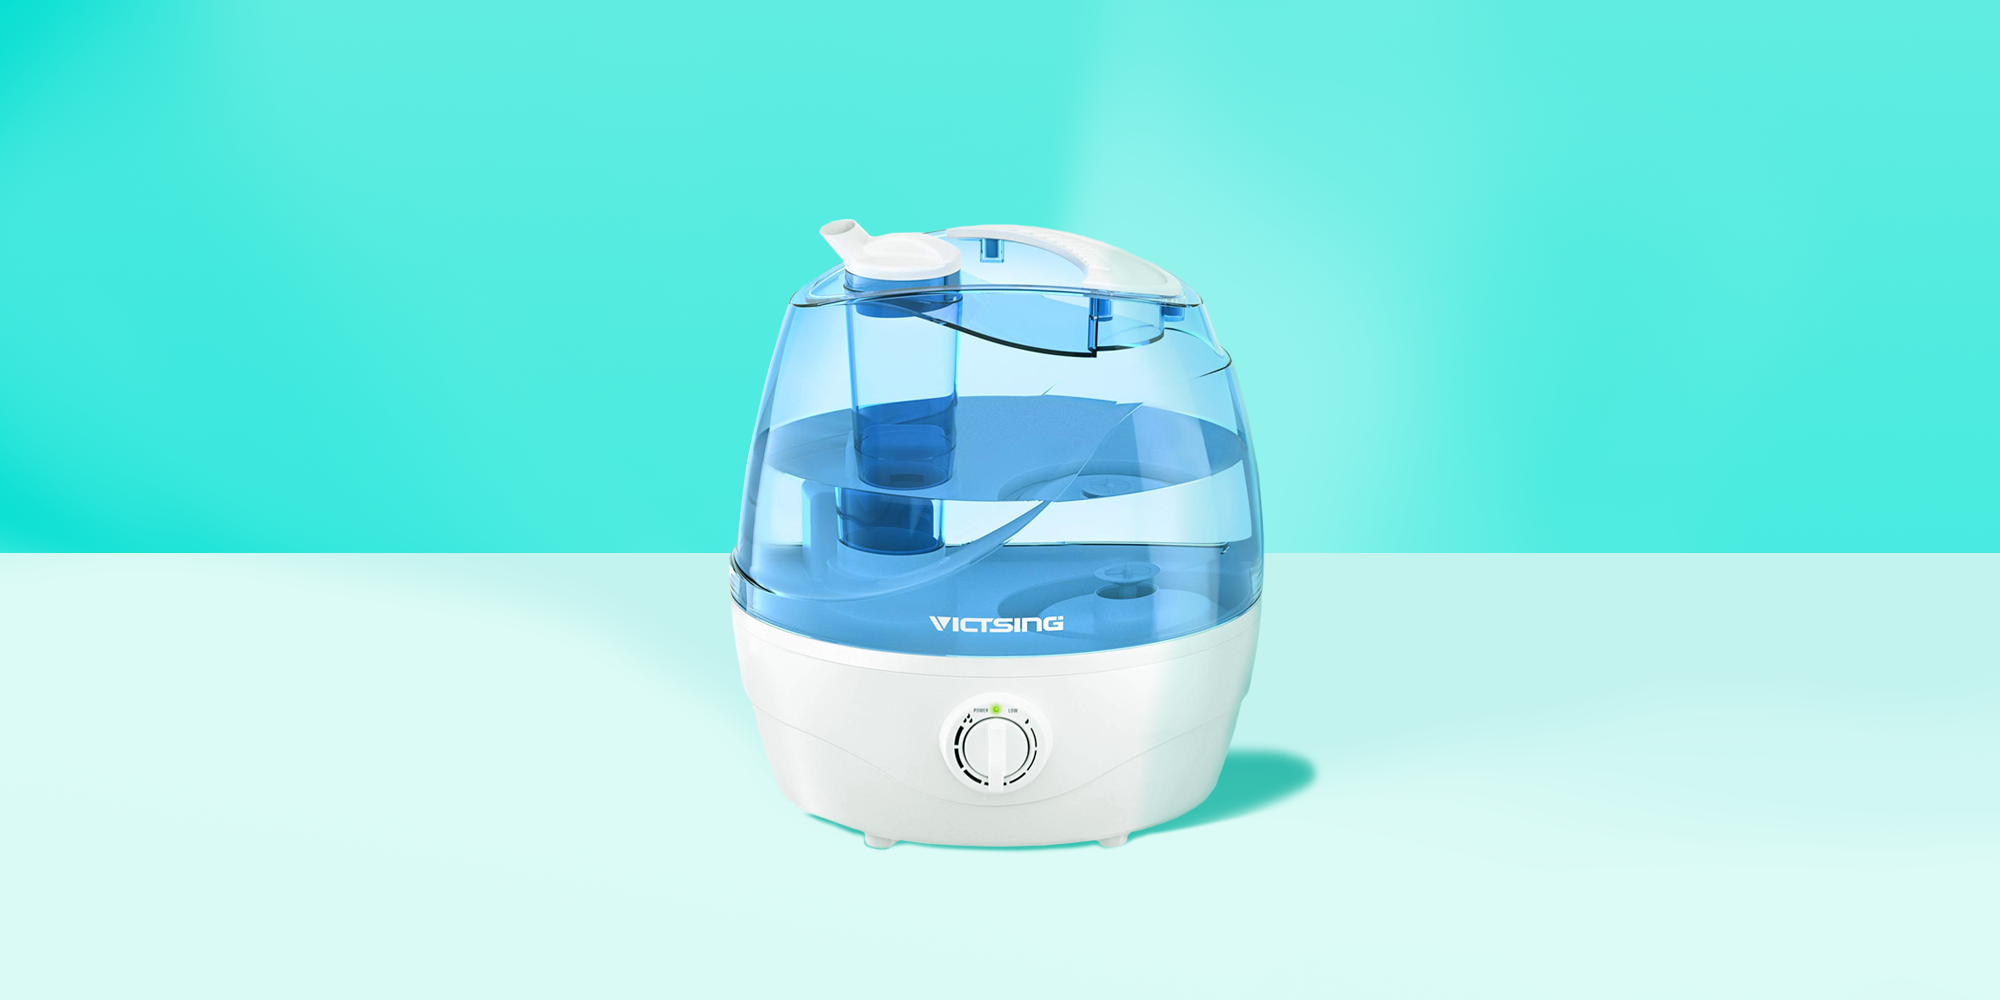 11 Best Humidifiers for 2019 - Top-Rated Humidifiers